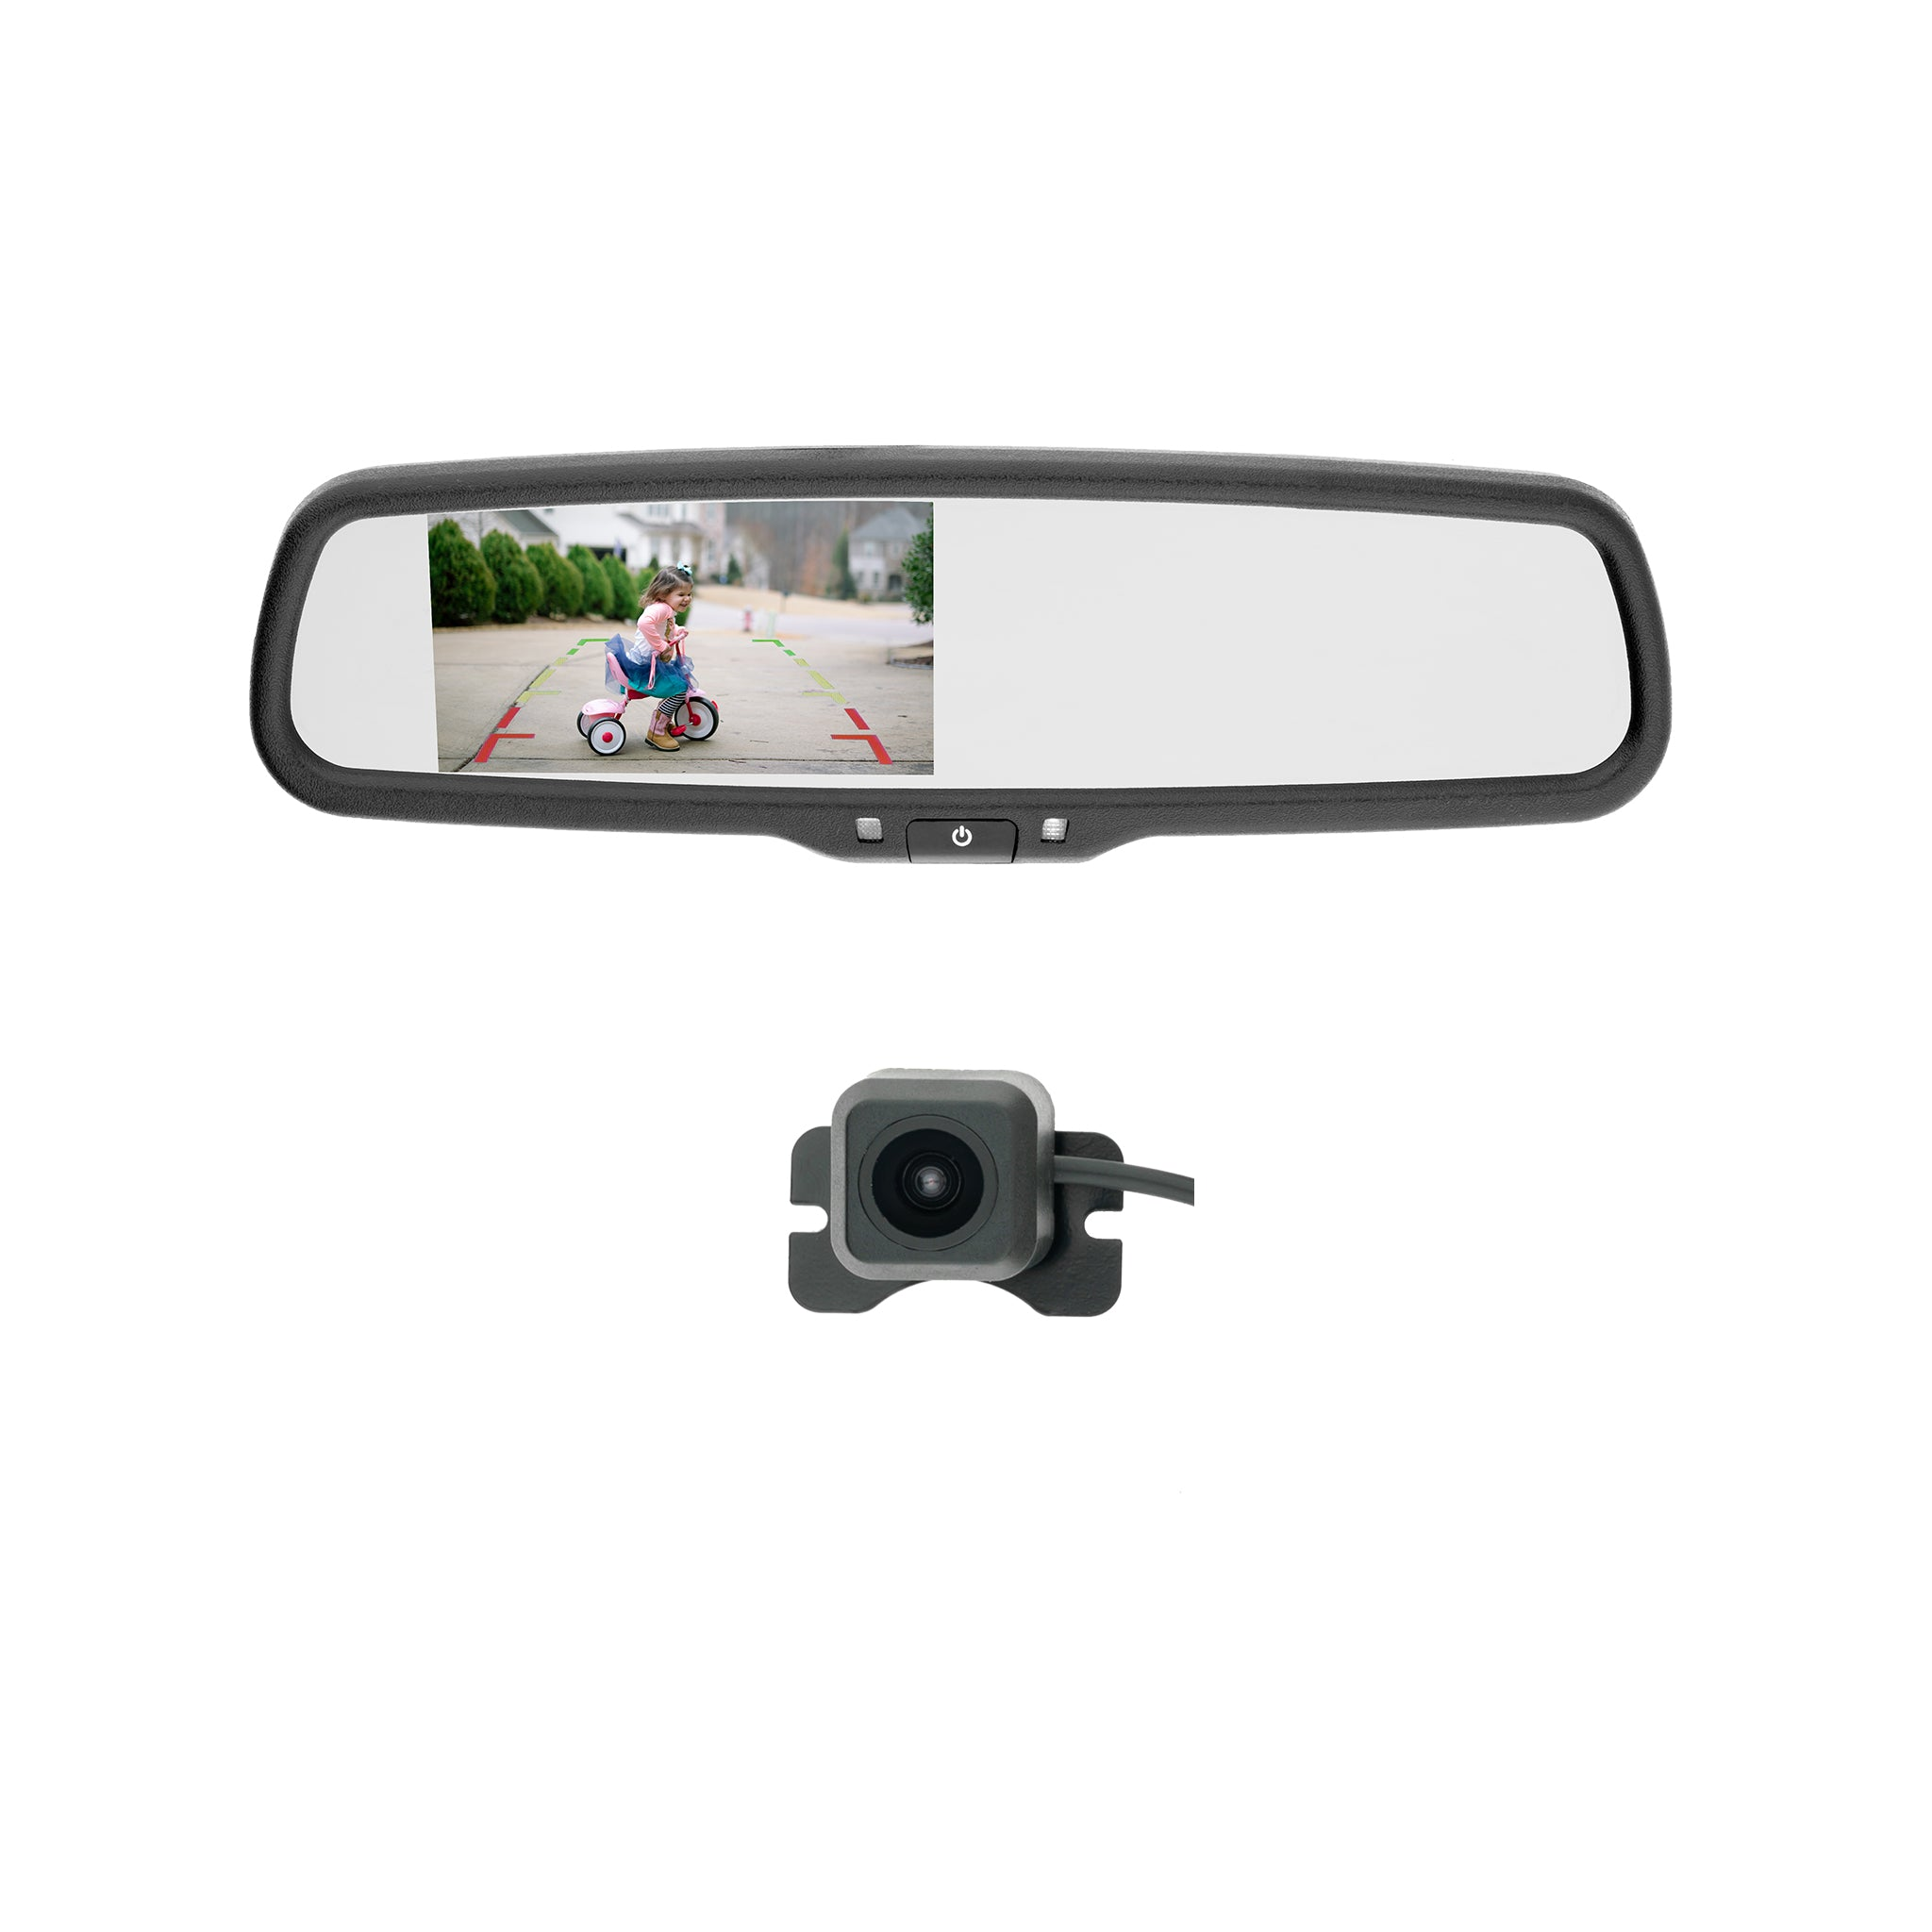 Backup Camera Kit with Rearview Mirror Monitor & Lip Mount